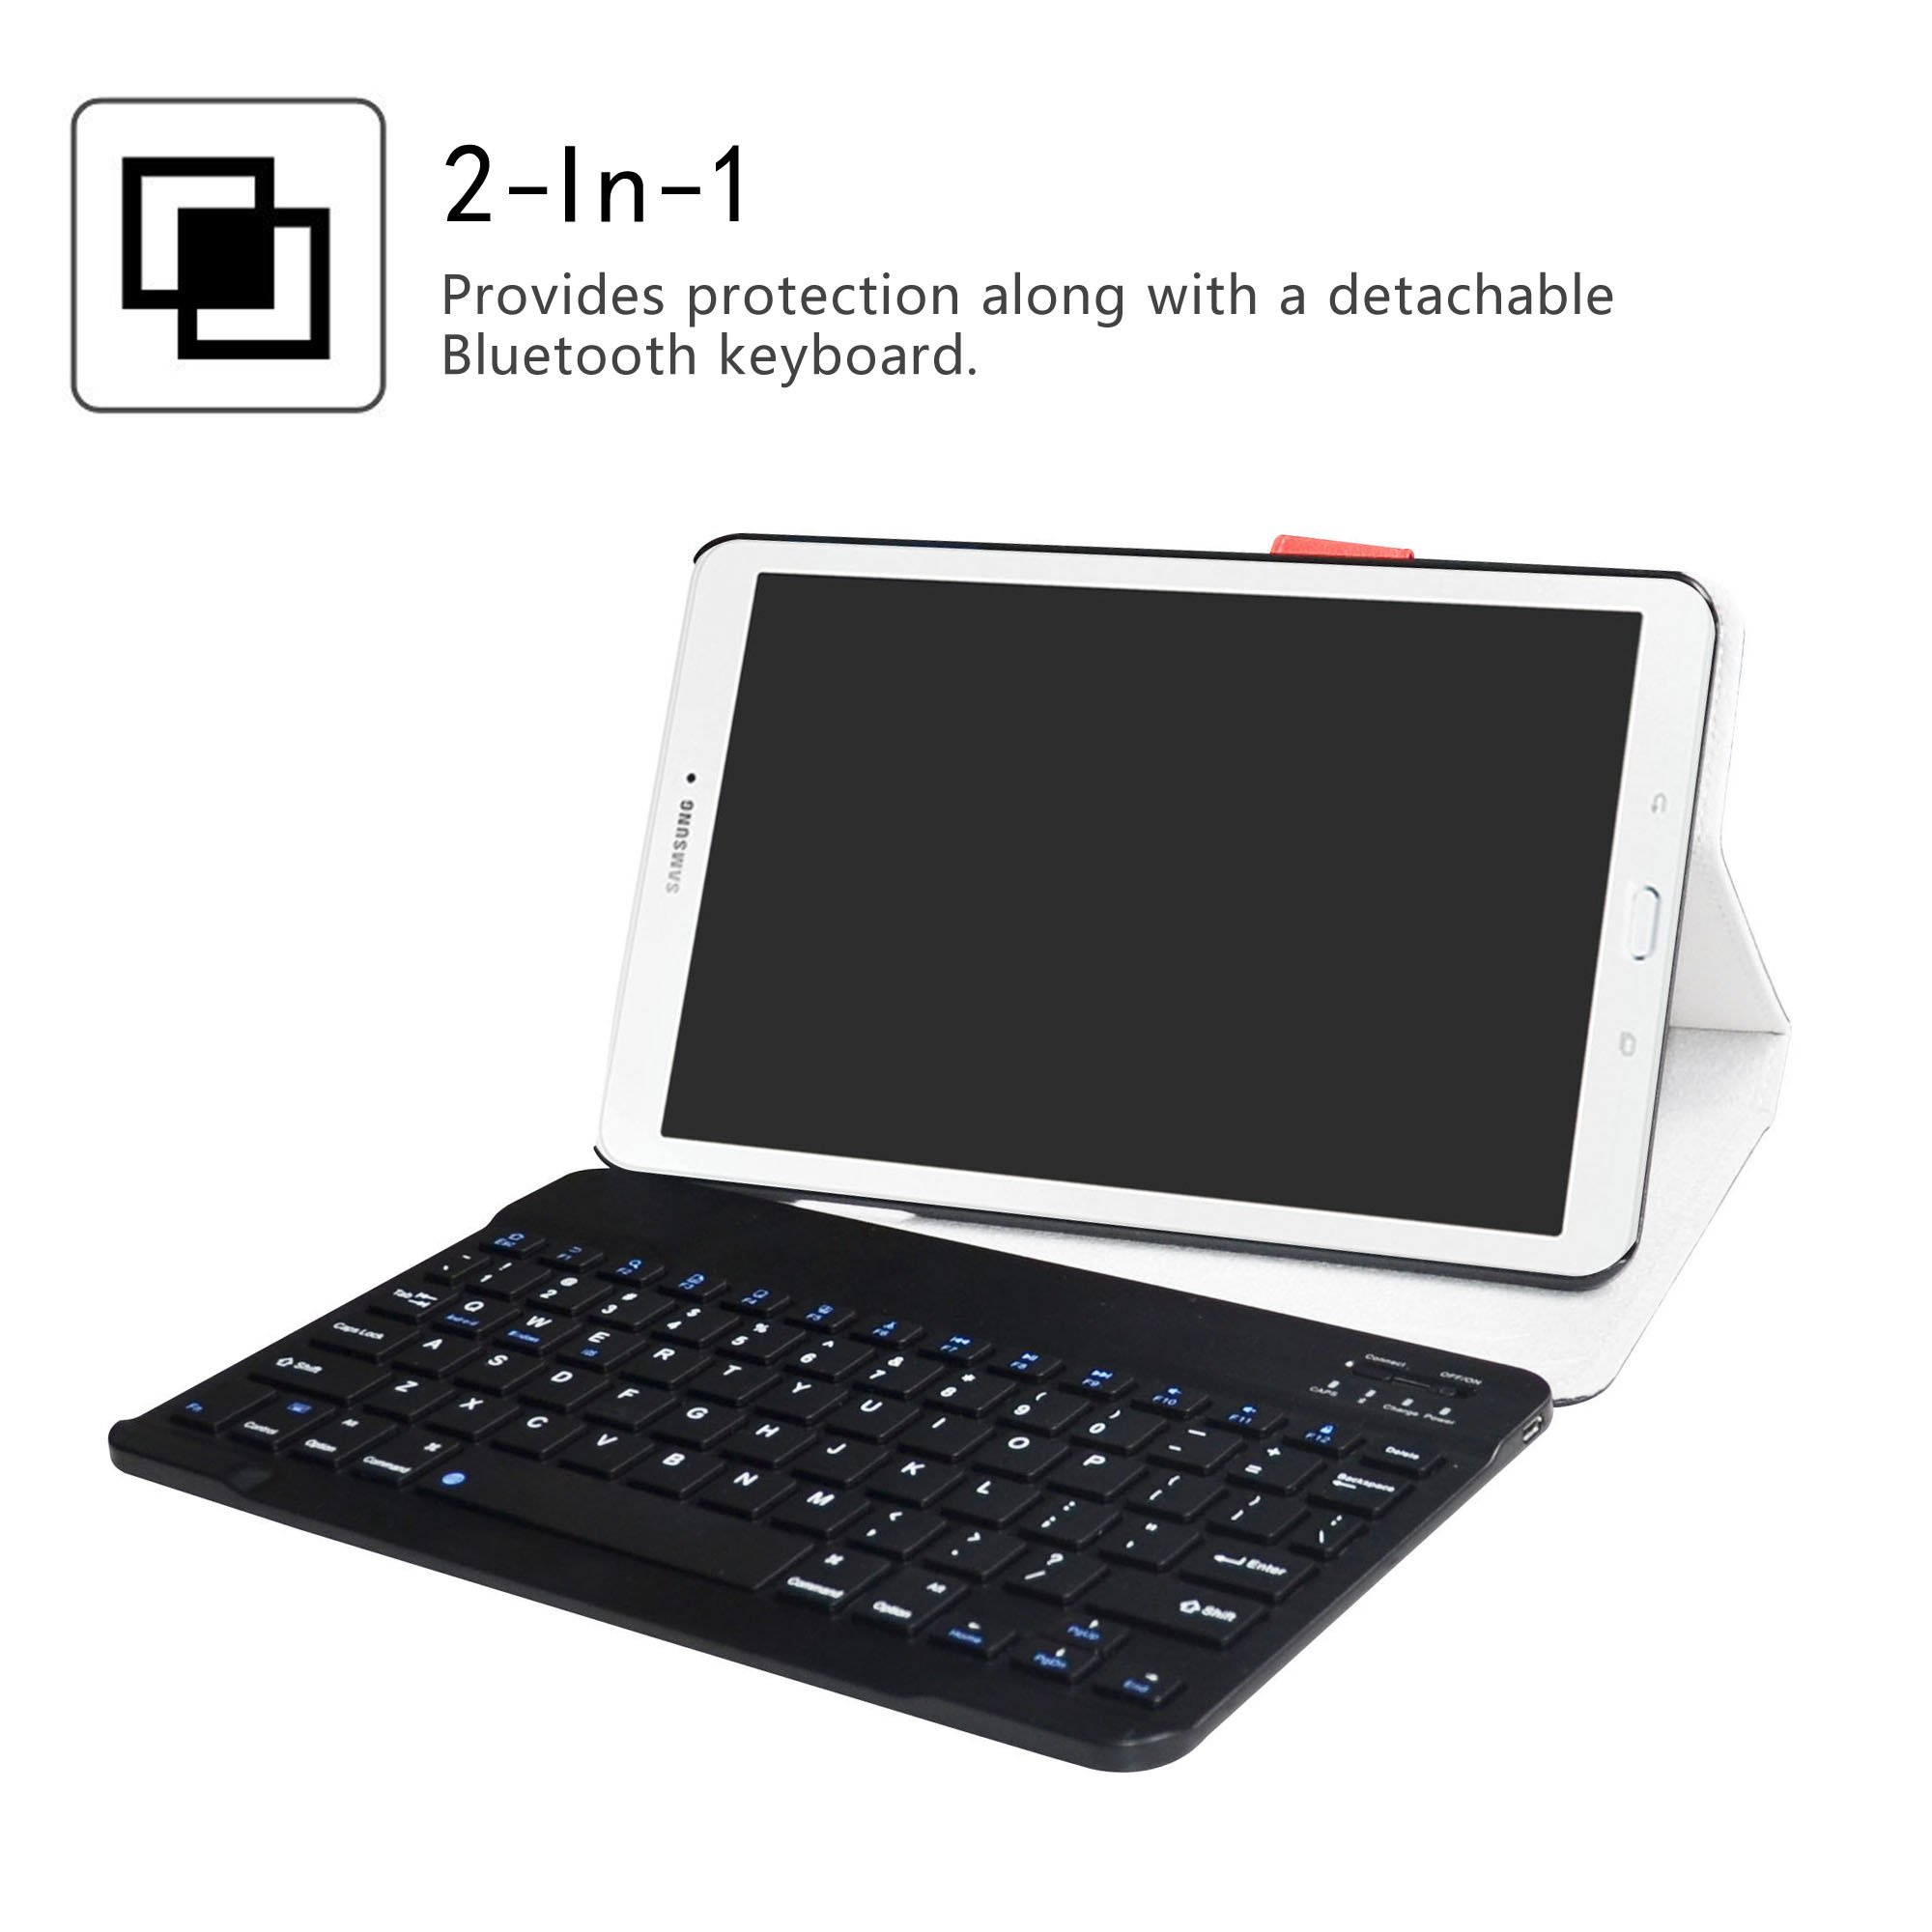 Samsung Galaxy Tab E 9.6 Bluetooth Keyboard Case,LiuShan Detachable Wireless Bluetooth Keyboard Standing PU Leather Cover for 9.6'' Samsung Galaxy Tab E 9.6 T560 Android Tablet,Black by LiuShan (Image #2)